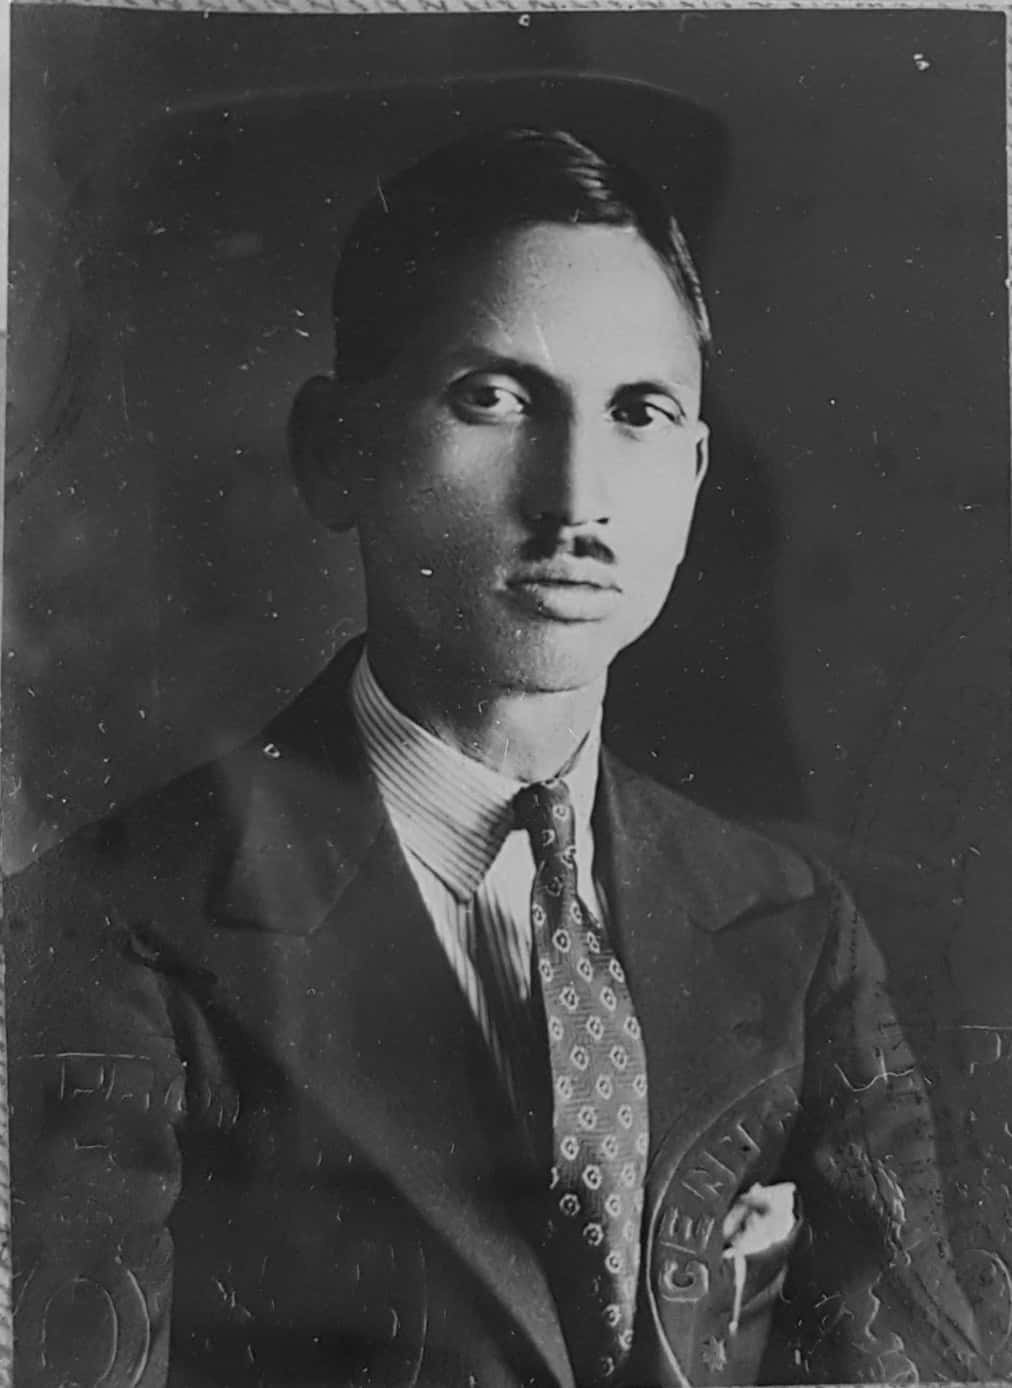 MI5 monitored Indian communist Gorpal Mukund Huddar, who fought with the International Brigades against Franco in Spain in 1938